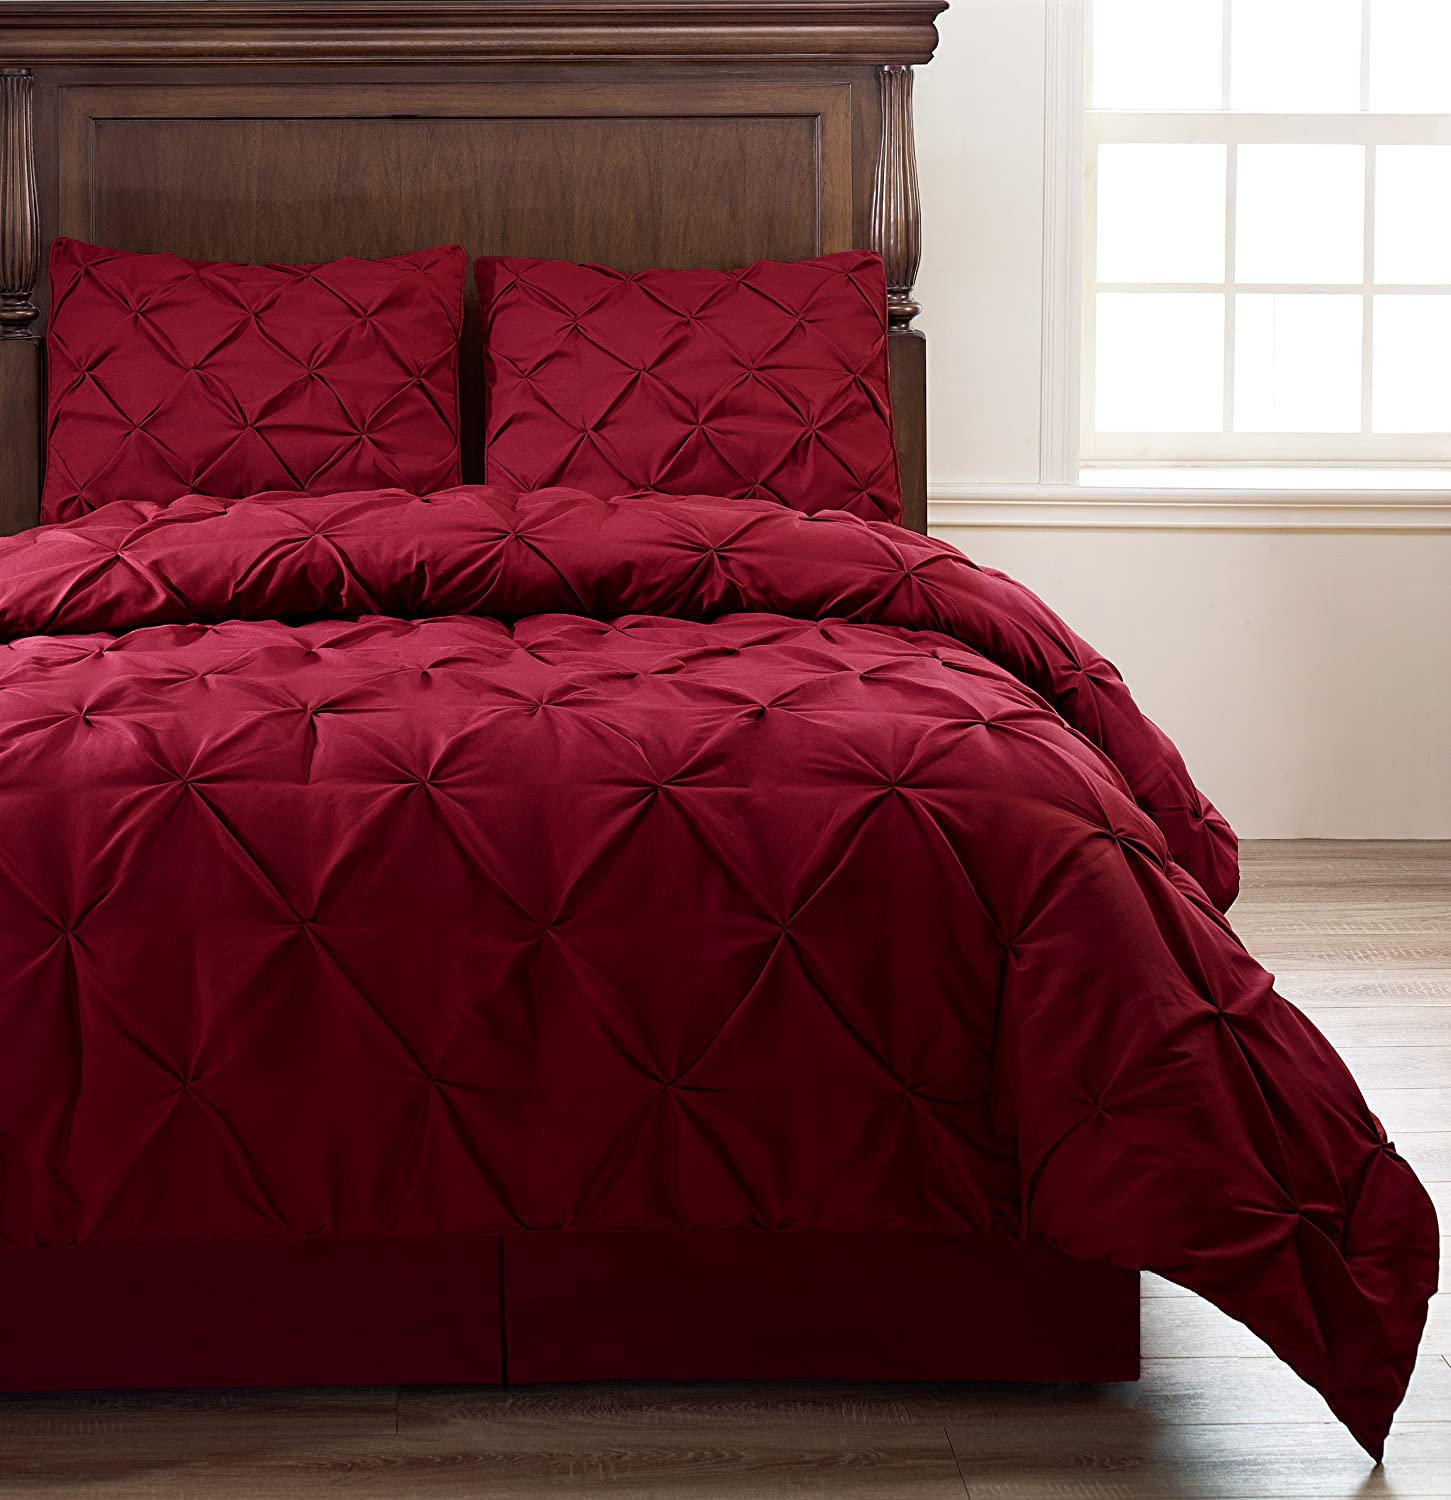 Red Bedspreads And Comforters Fel7 Com